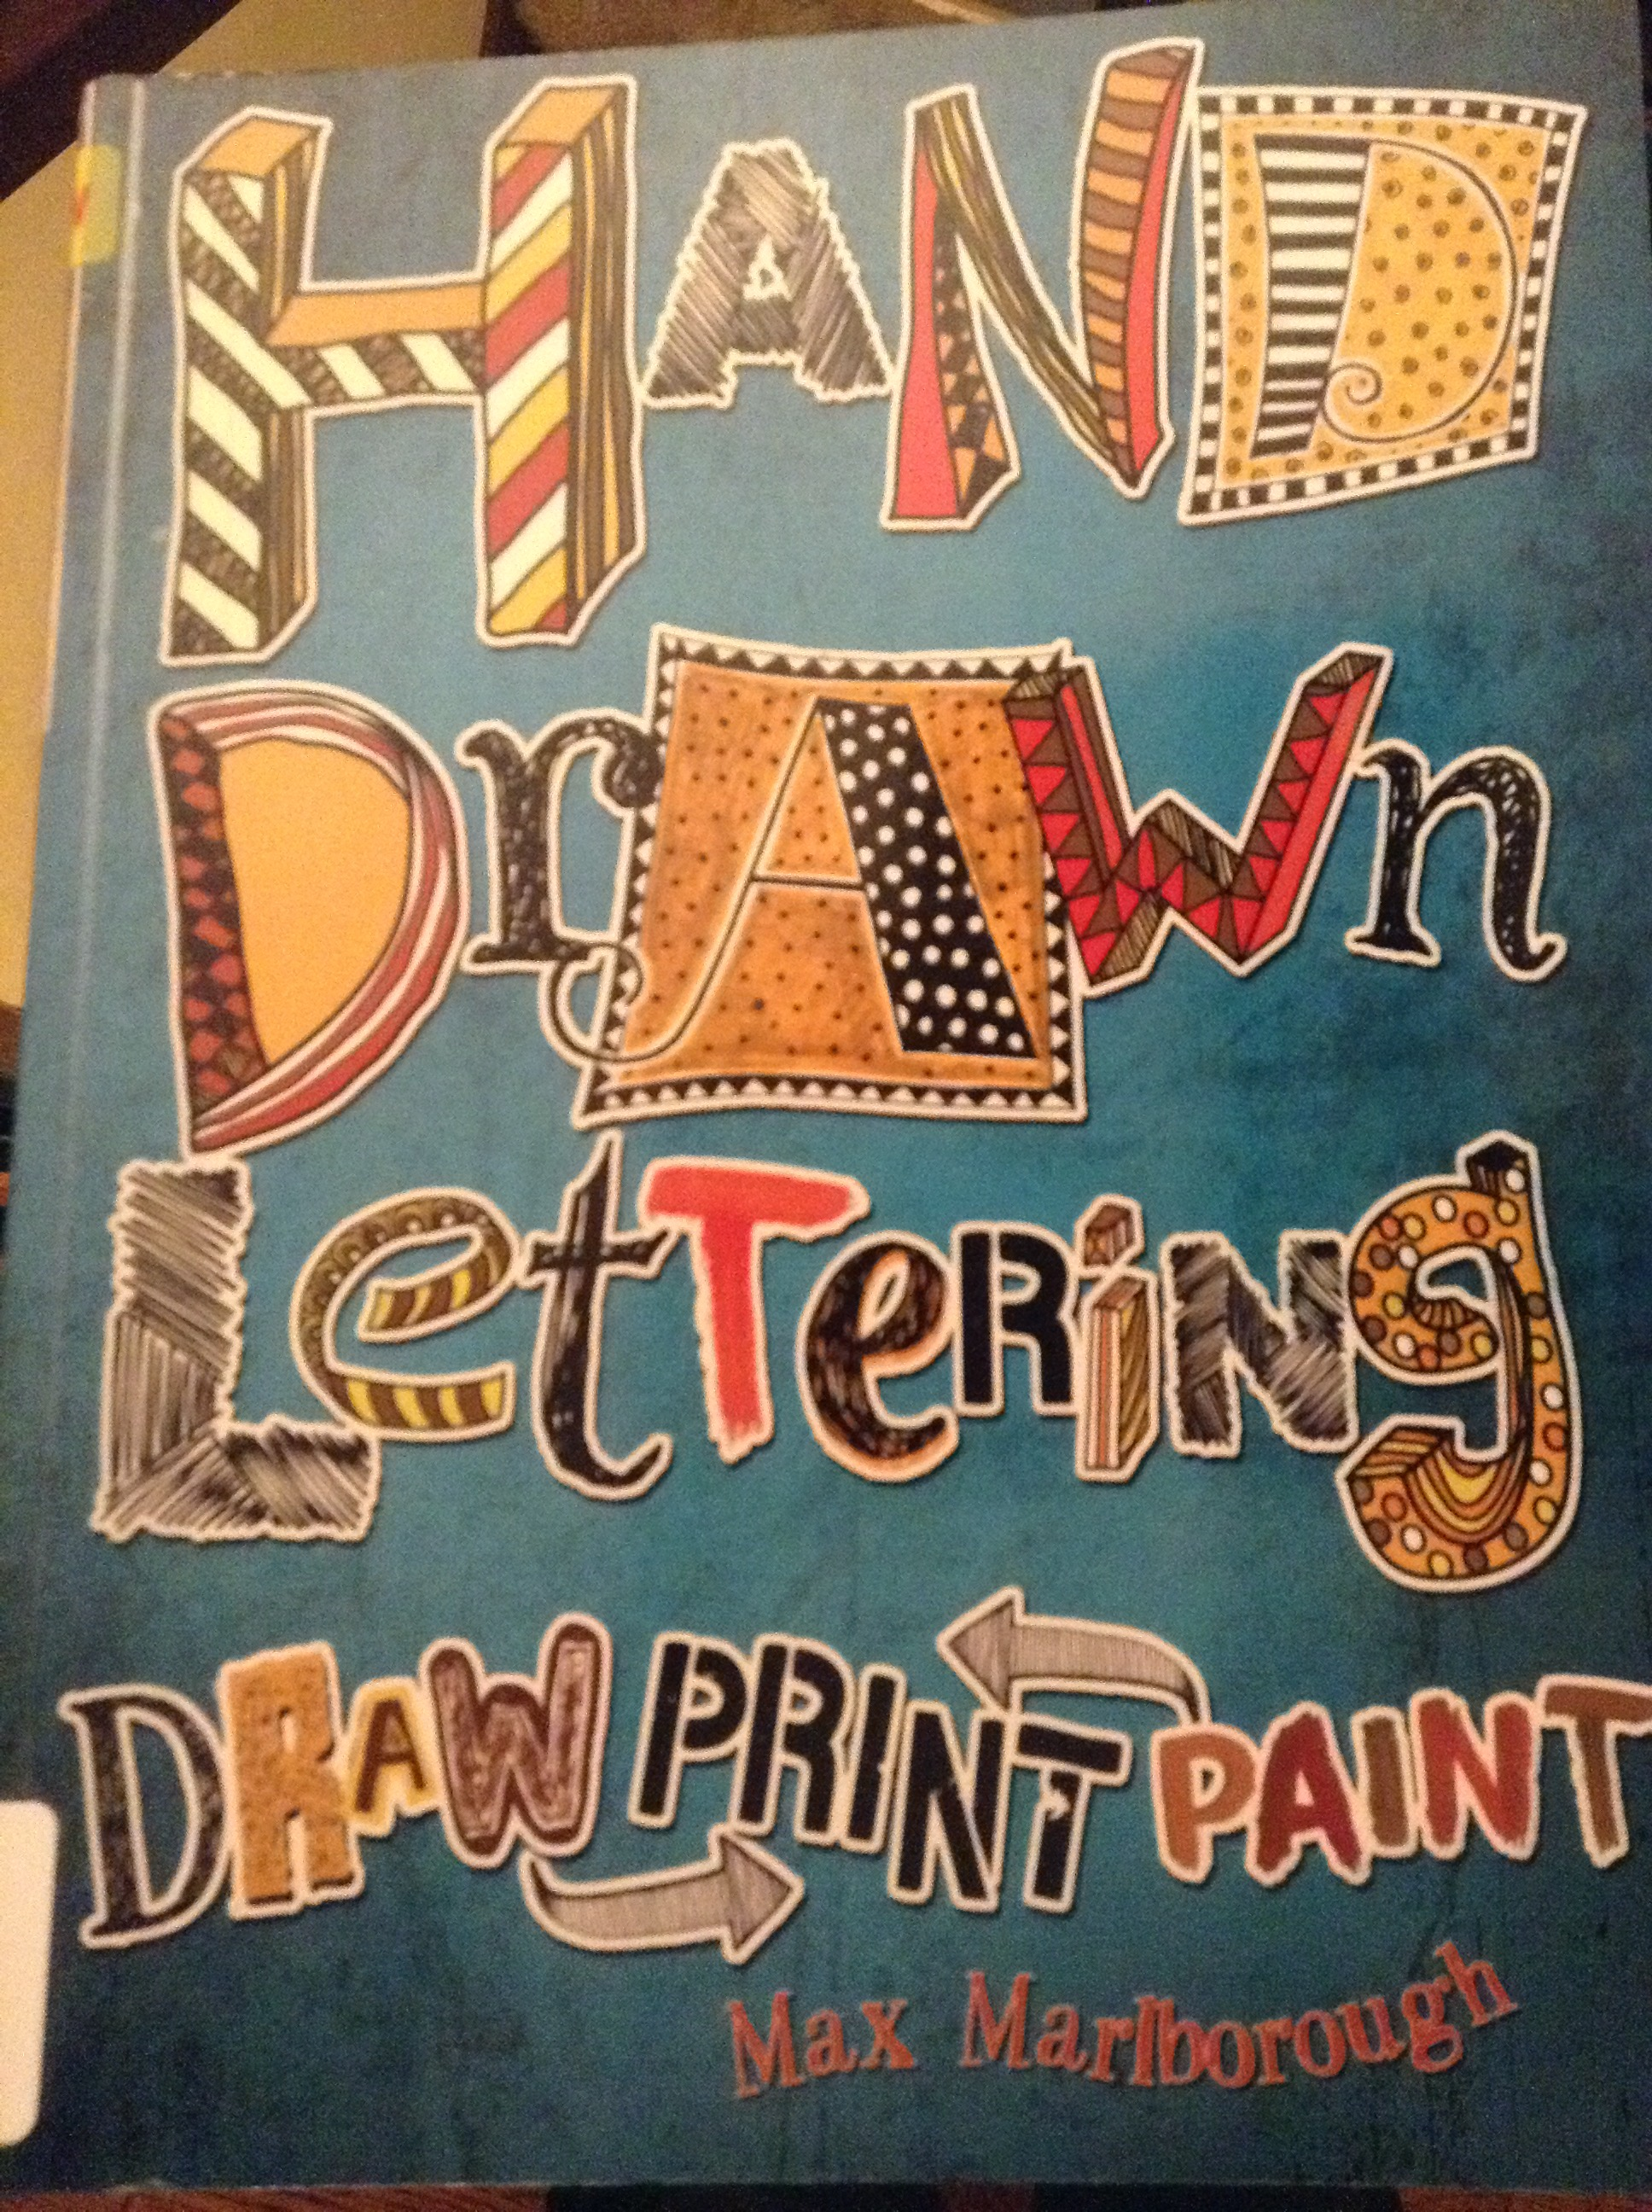 hand Drawn Lettering: Draw Print Paint by Max Marlborough